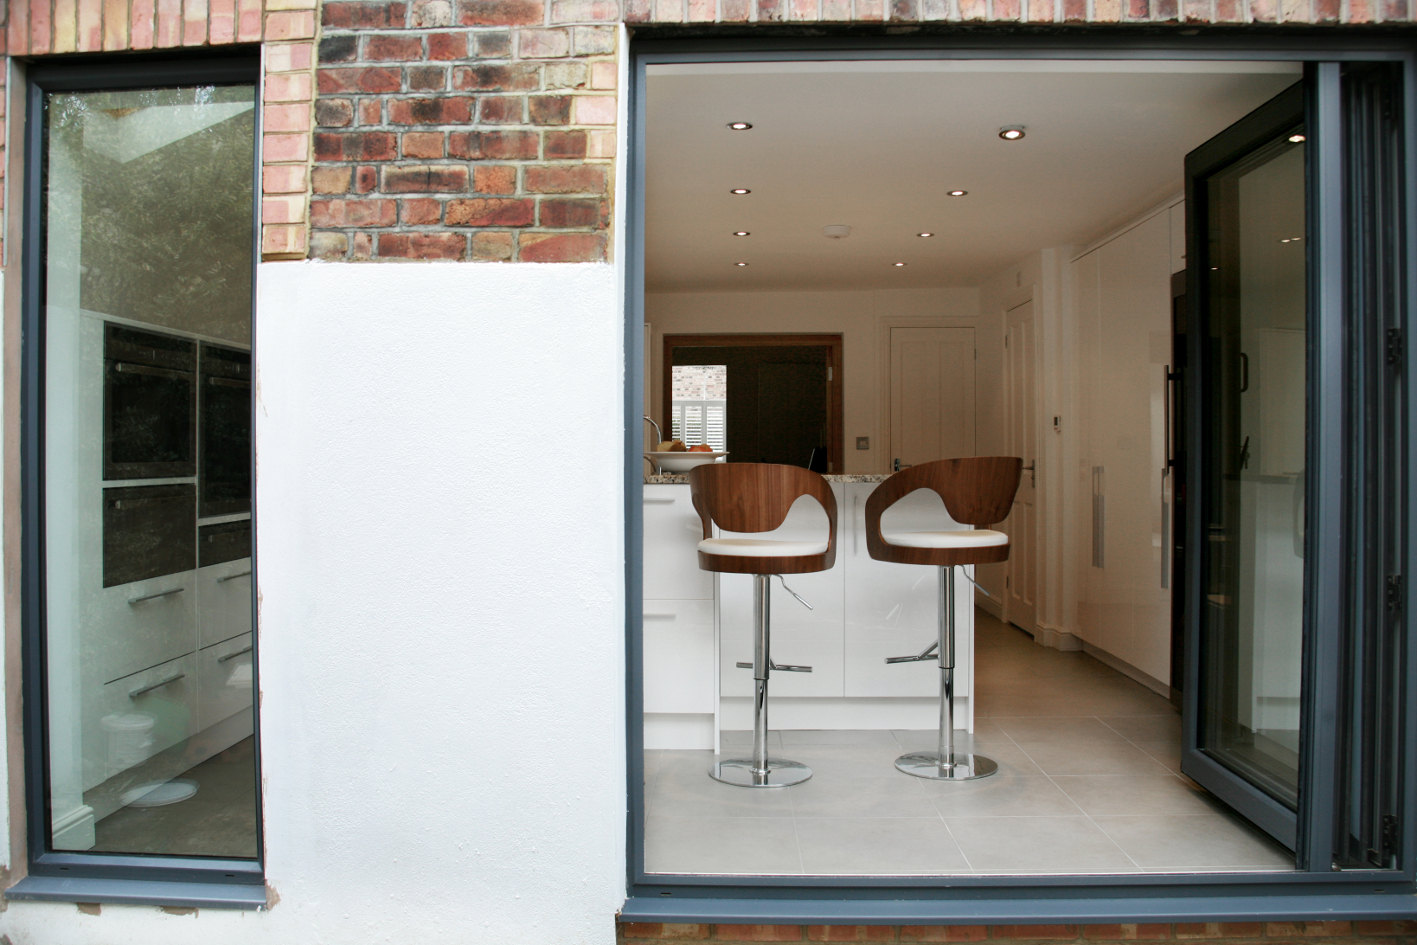 Home side extensions Highbury Islington N5 f improf 0x0 Highbury, Islington N5 | House extension